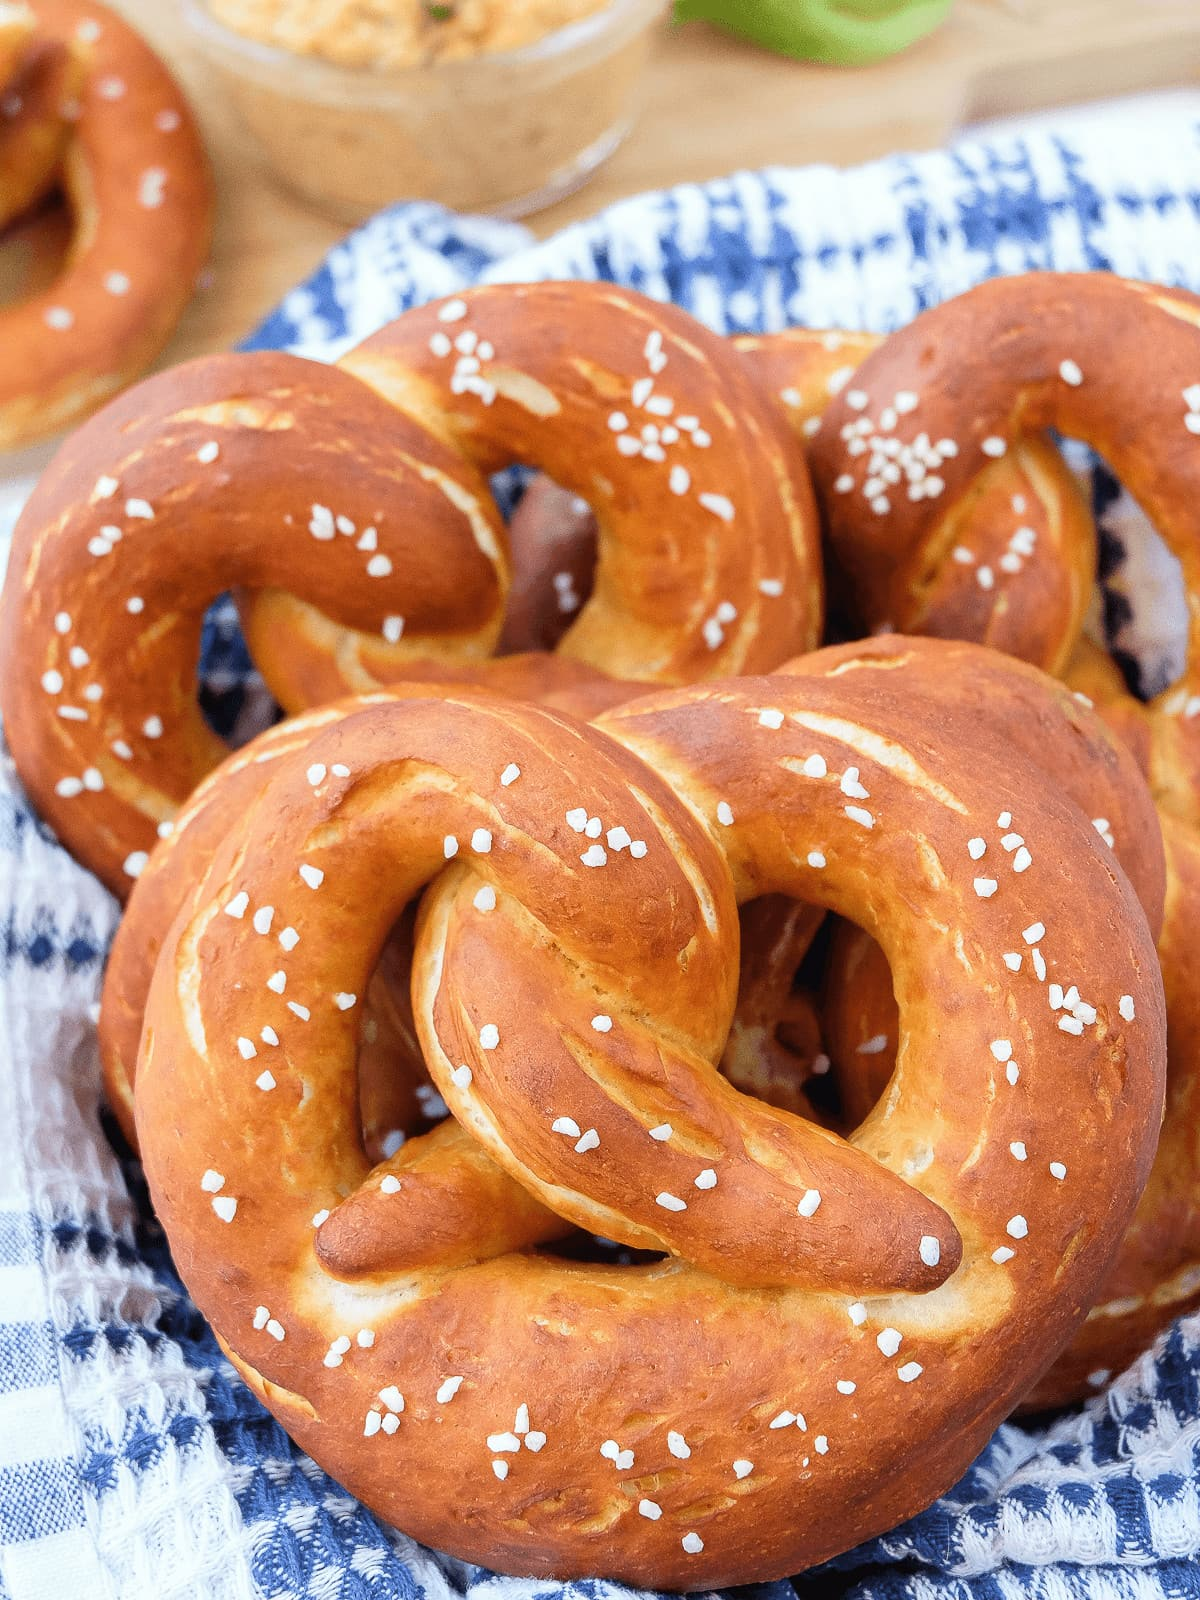 German pretzels with coarse salt on top in basket with blue and white dish towel